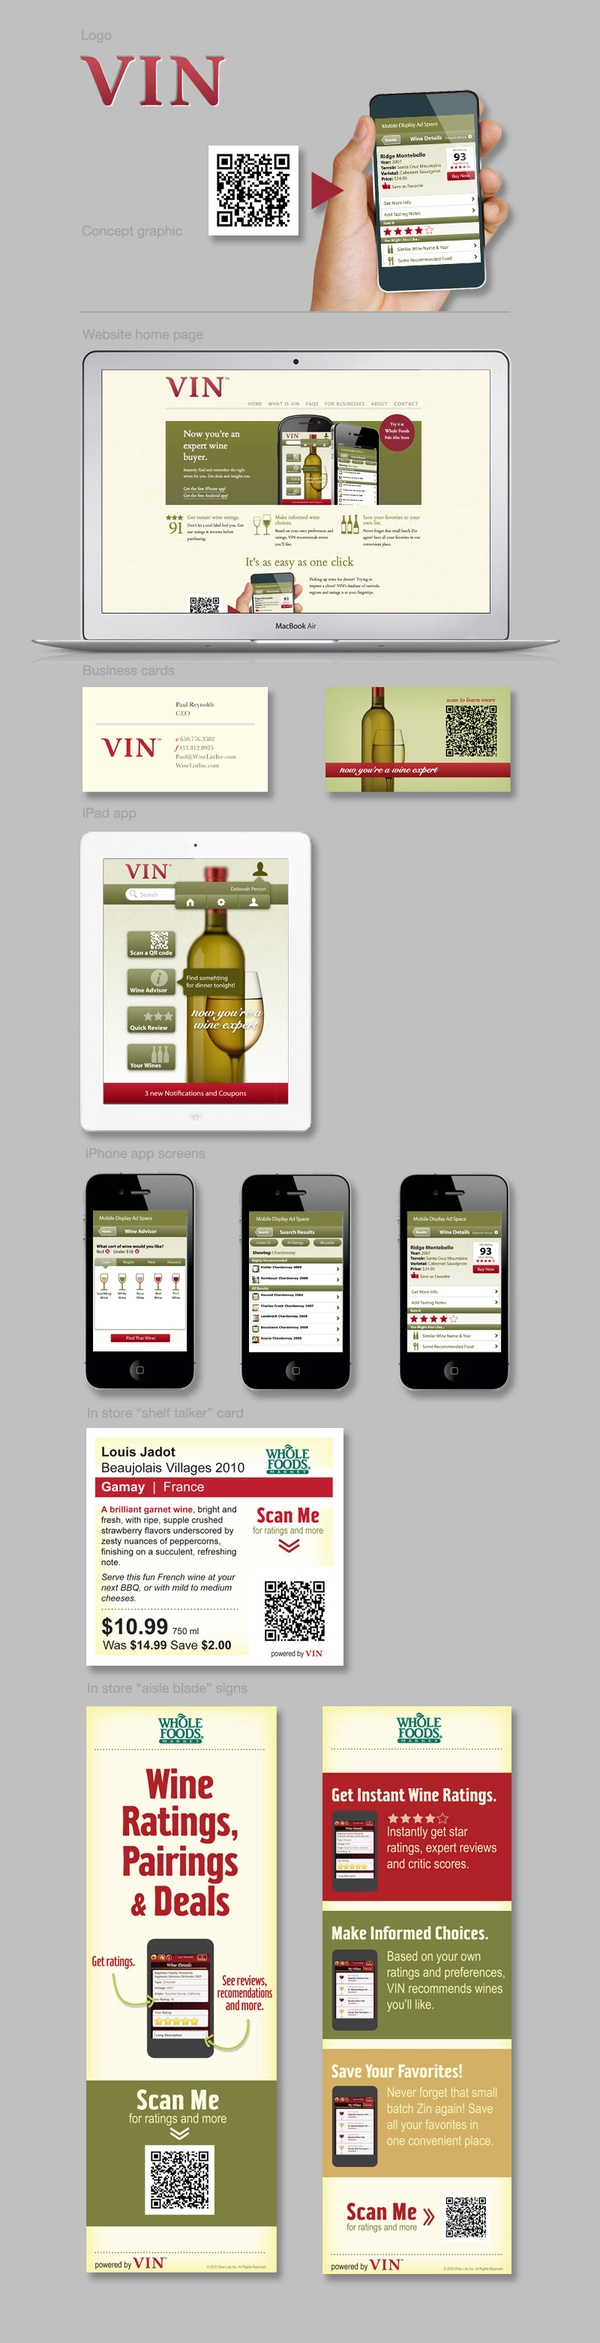 VIN | Wine List a powerful in-store point of purchase consumer information system. Design and marketing by Rob Gemmell, via Behance